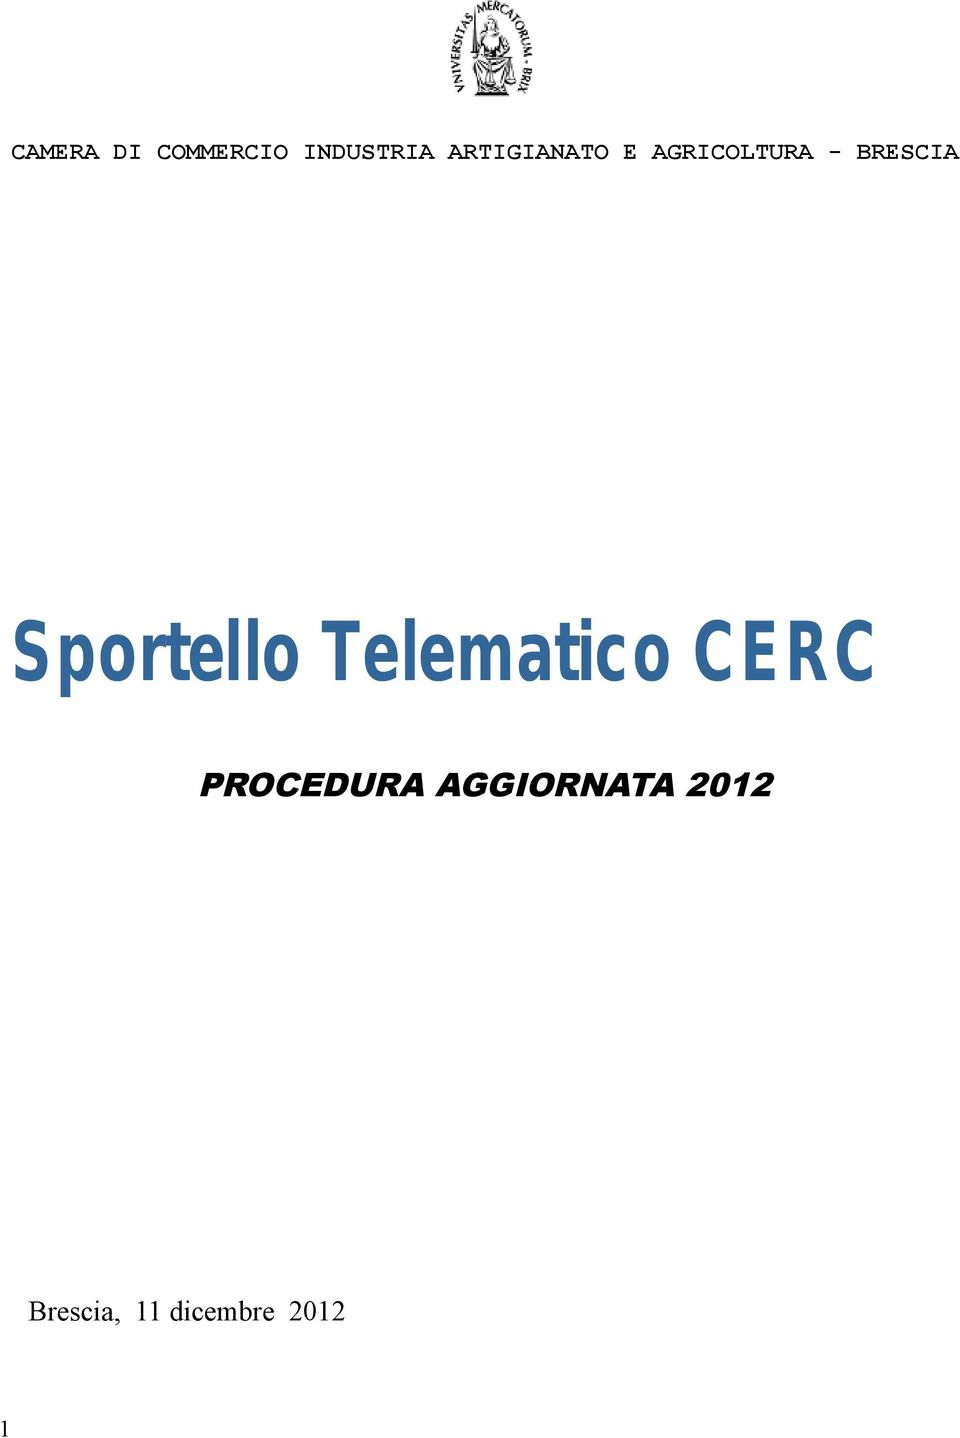 Sportello Telematico CERC PROCEDURA